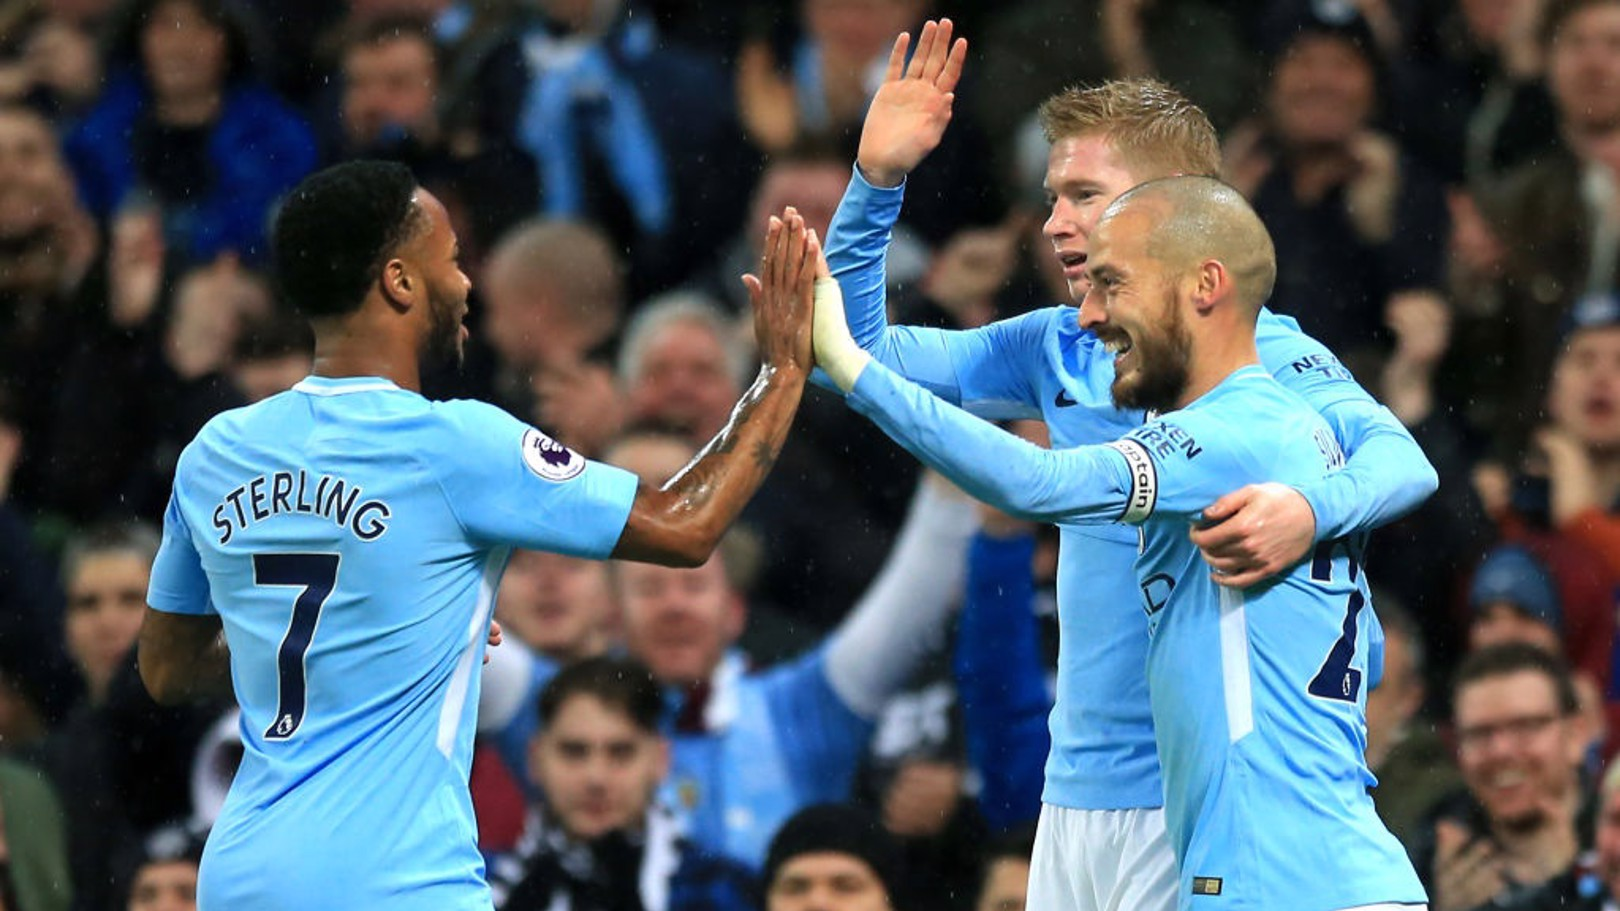 PFA AWARDS: City are well represented in this year's nominations